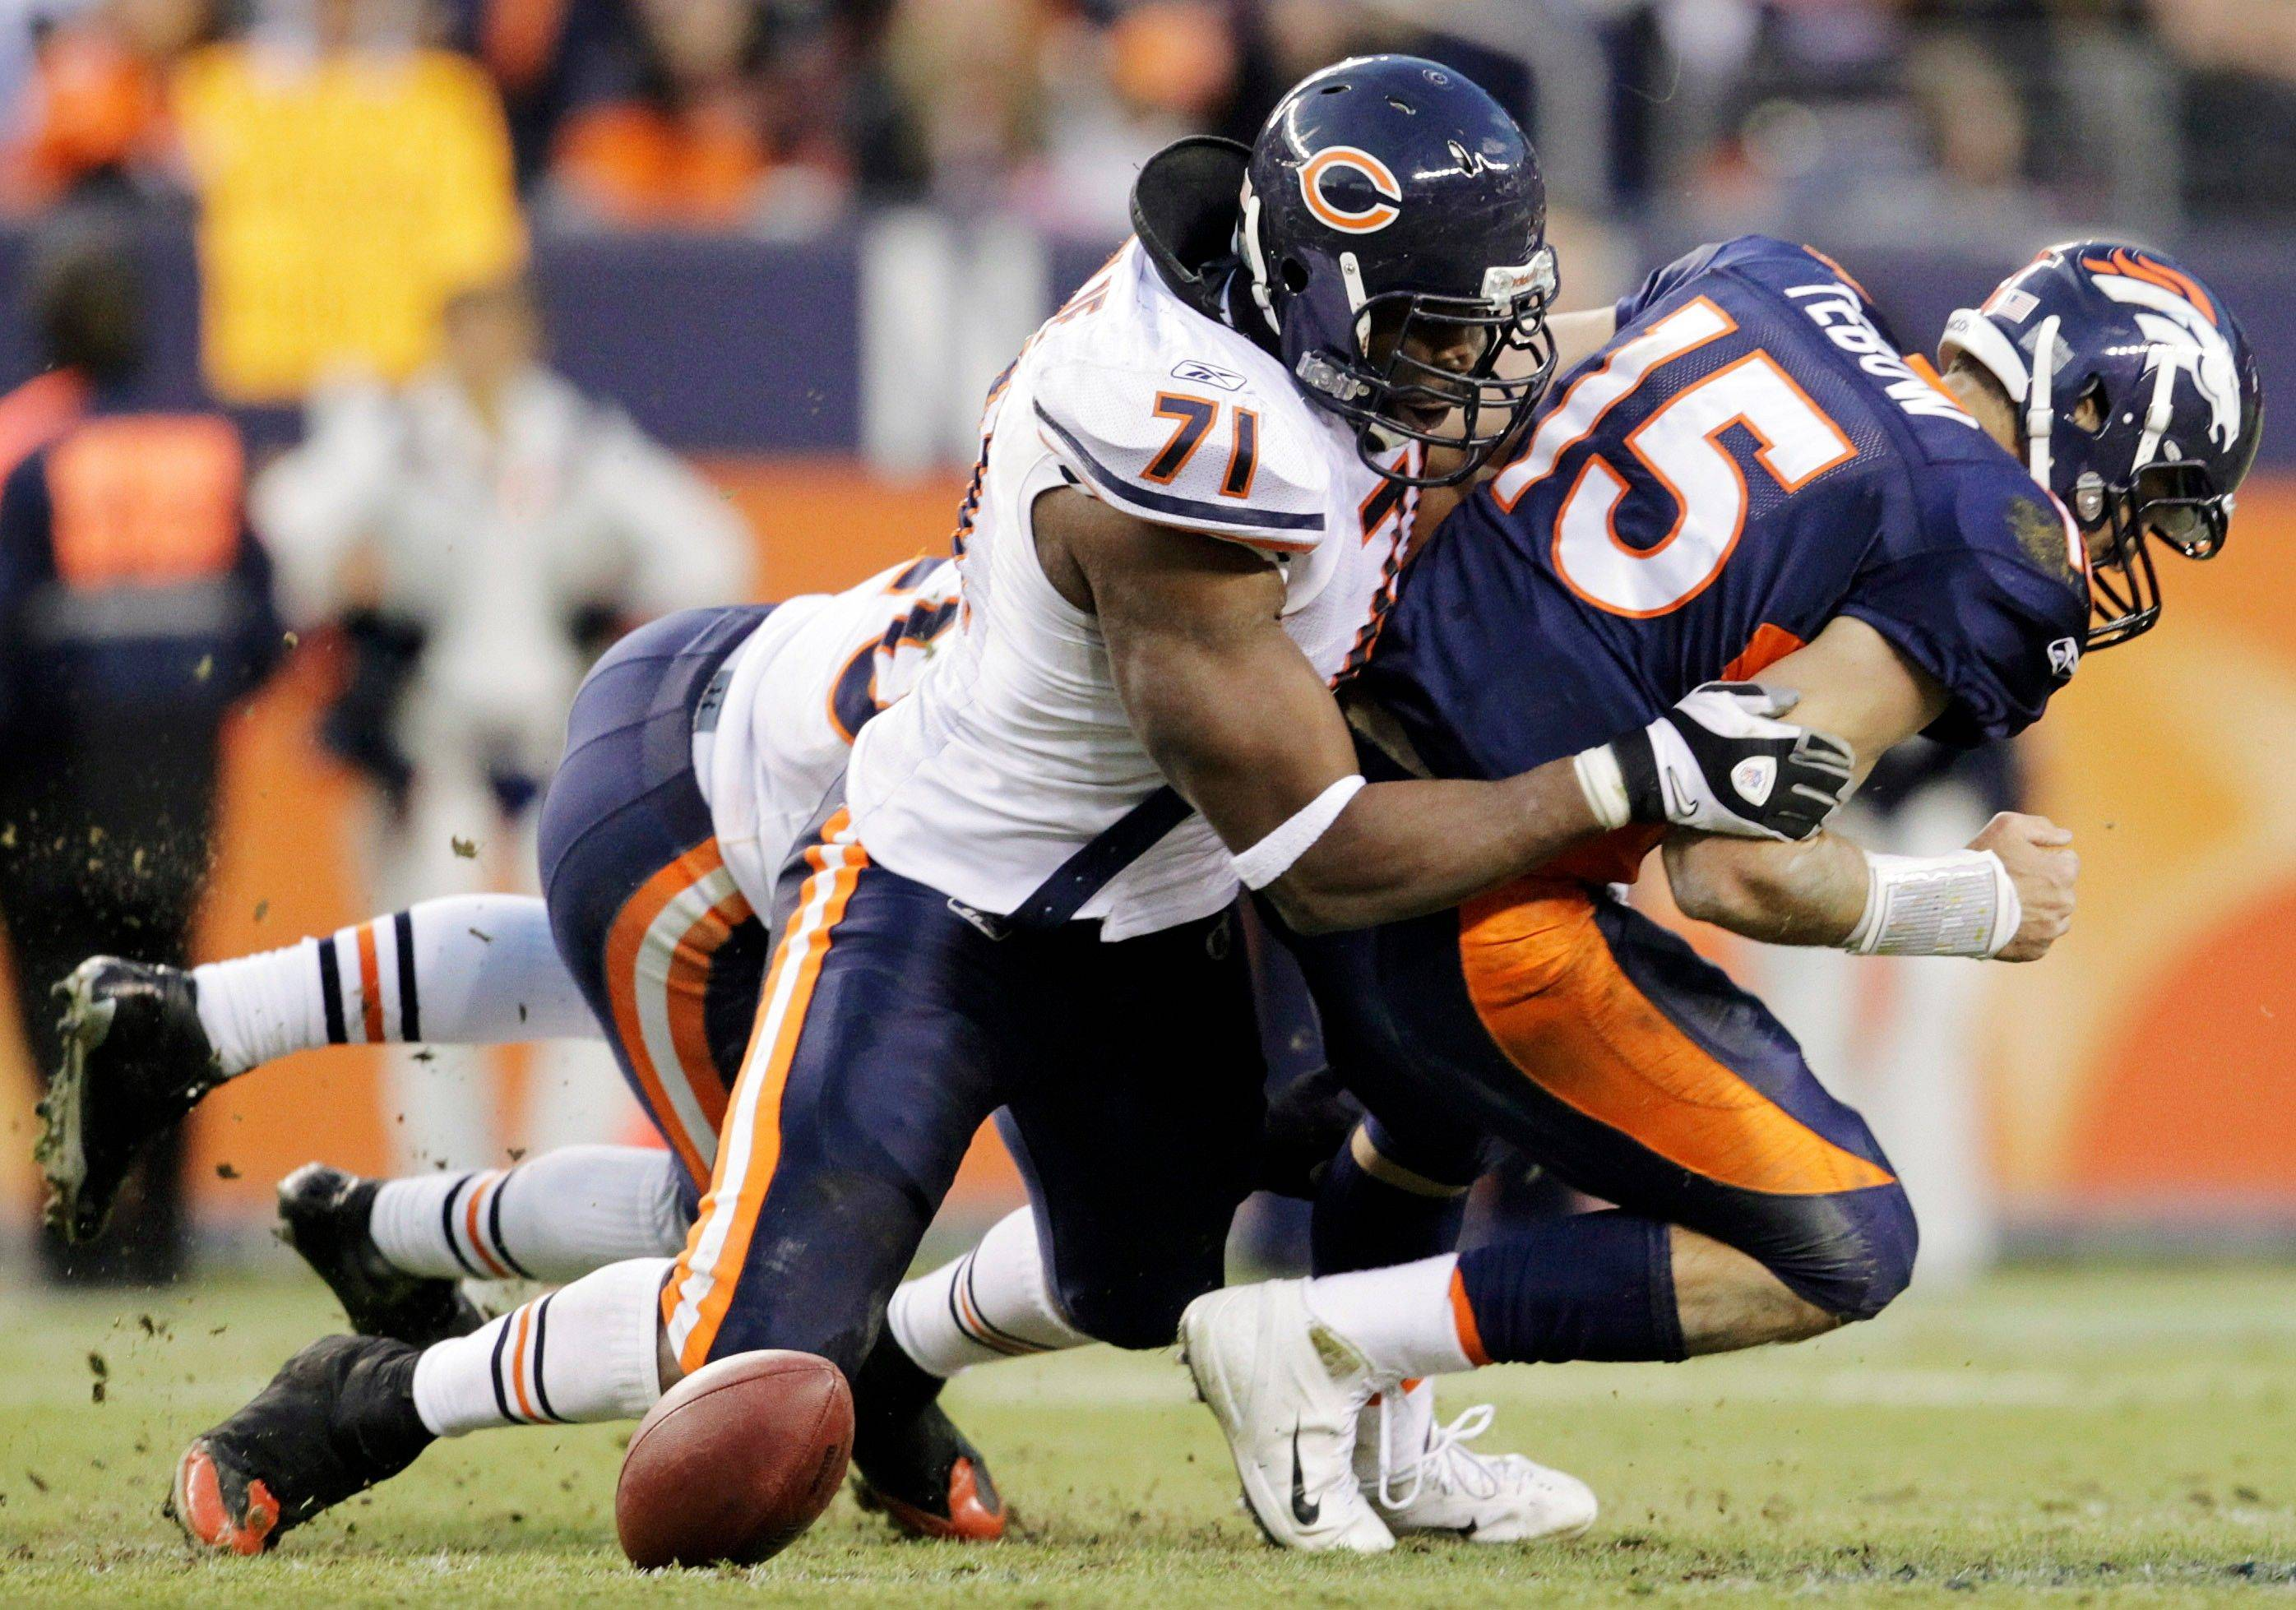 Chicago Bears defensive end Israel Idonije (71) hits Denver Broncos quarterback Tim Tebow (15) causing him to fumble the ball in the fourth quarter.